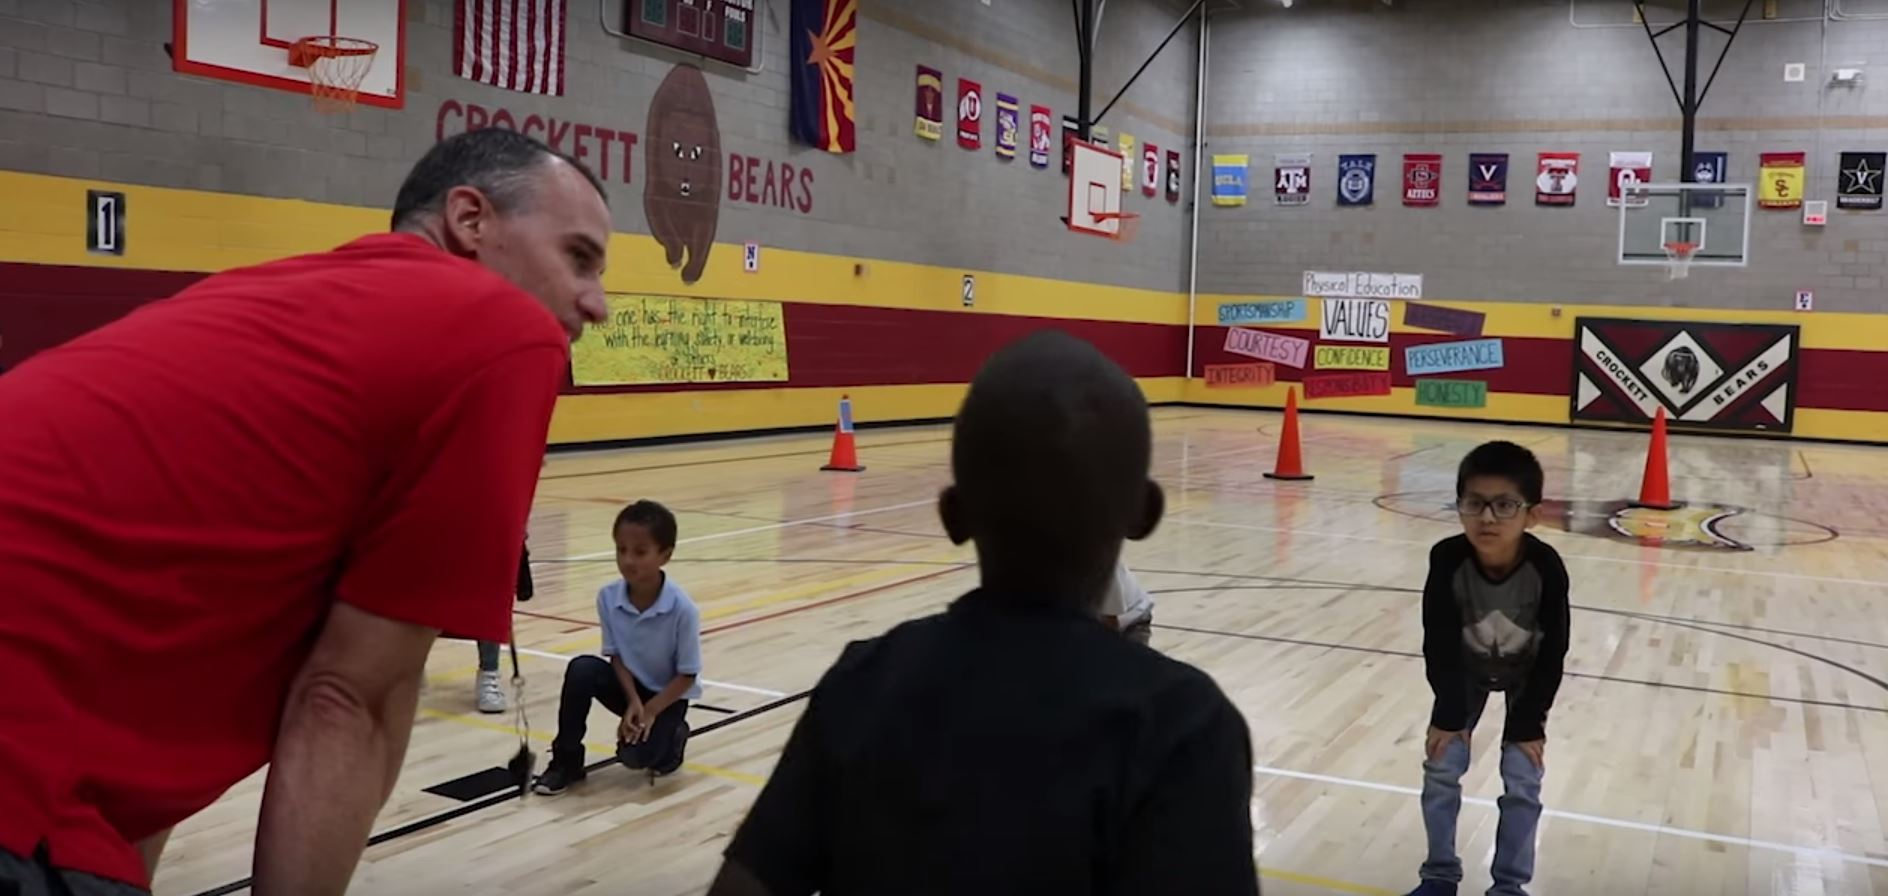 Josh Meibos is named Arizona Teacher of the Year 2018 (+ Video) JoshuaMeibosAndStudents